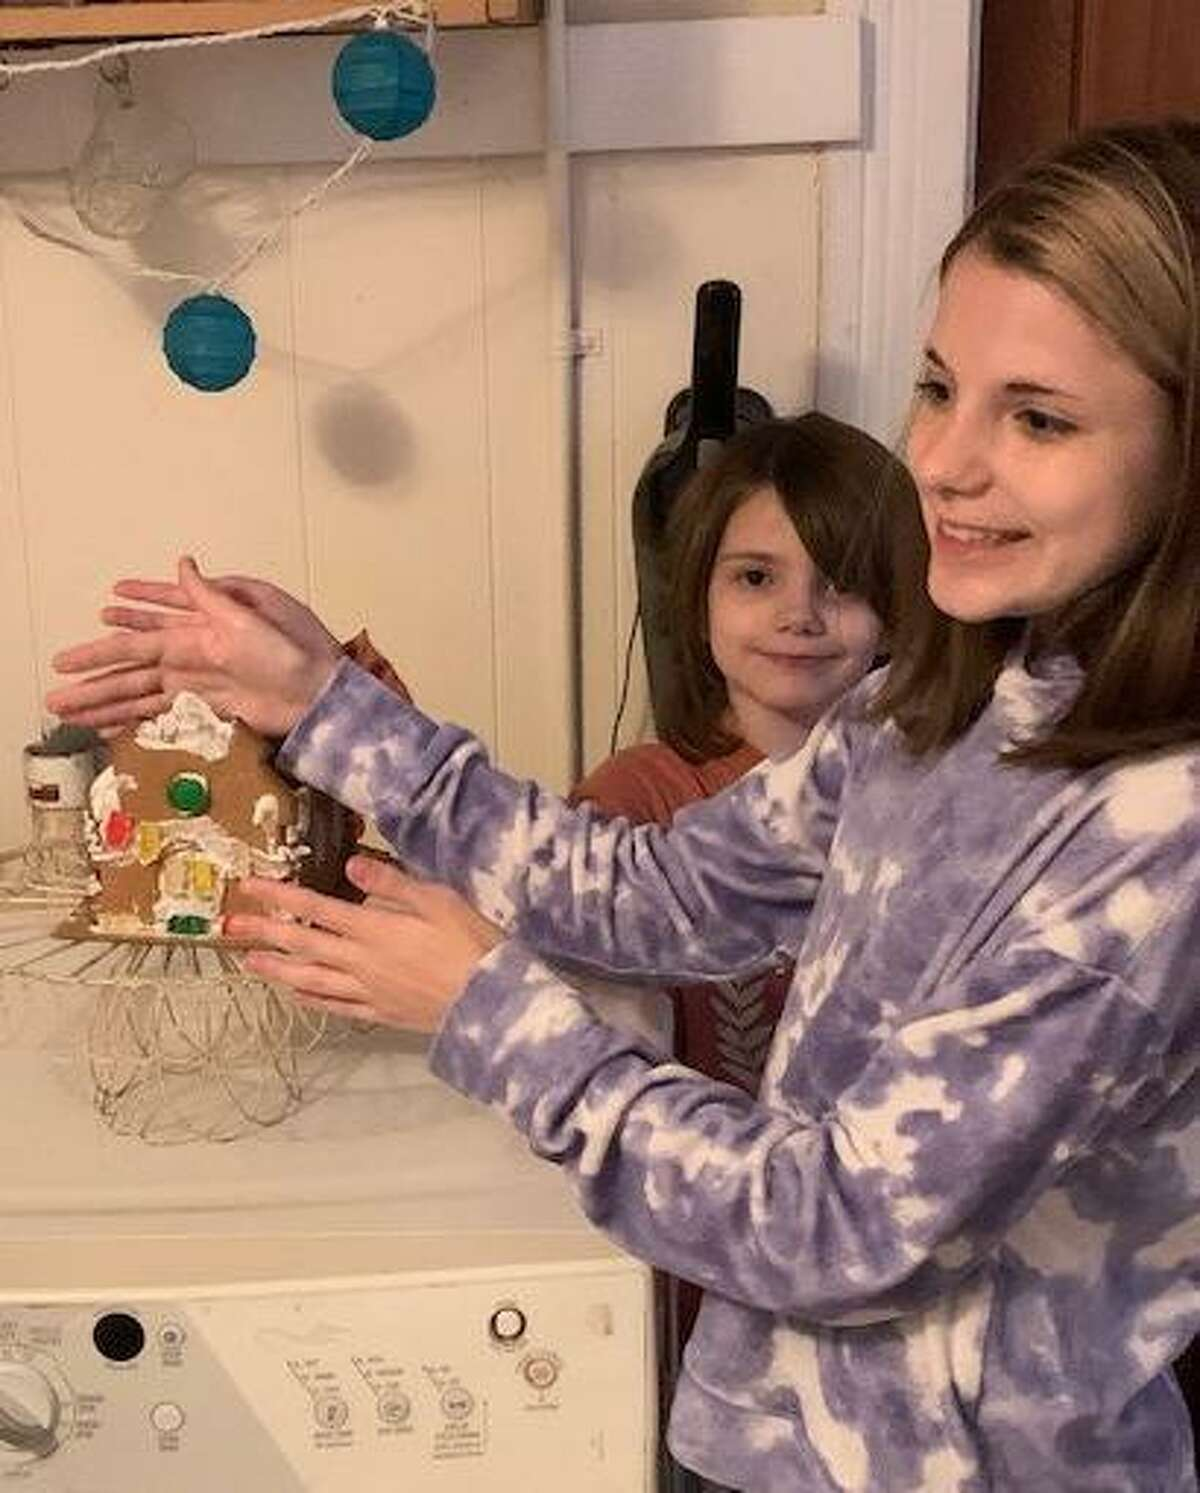 The Warner Theatre recently announced the winners of its gingerbread house contest. Above, runner-ups Maizey and Mallory T. explain their house.